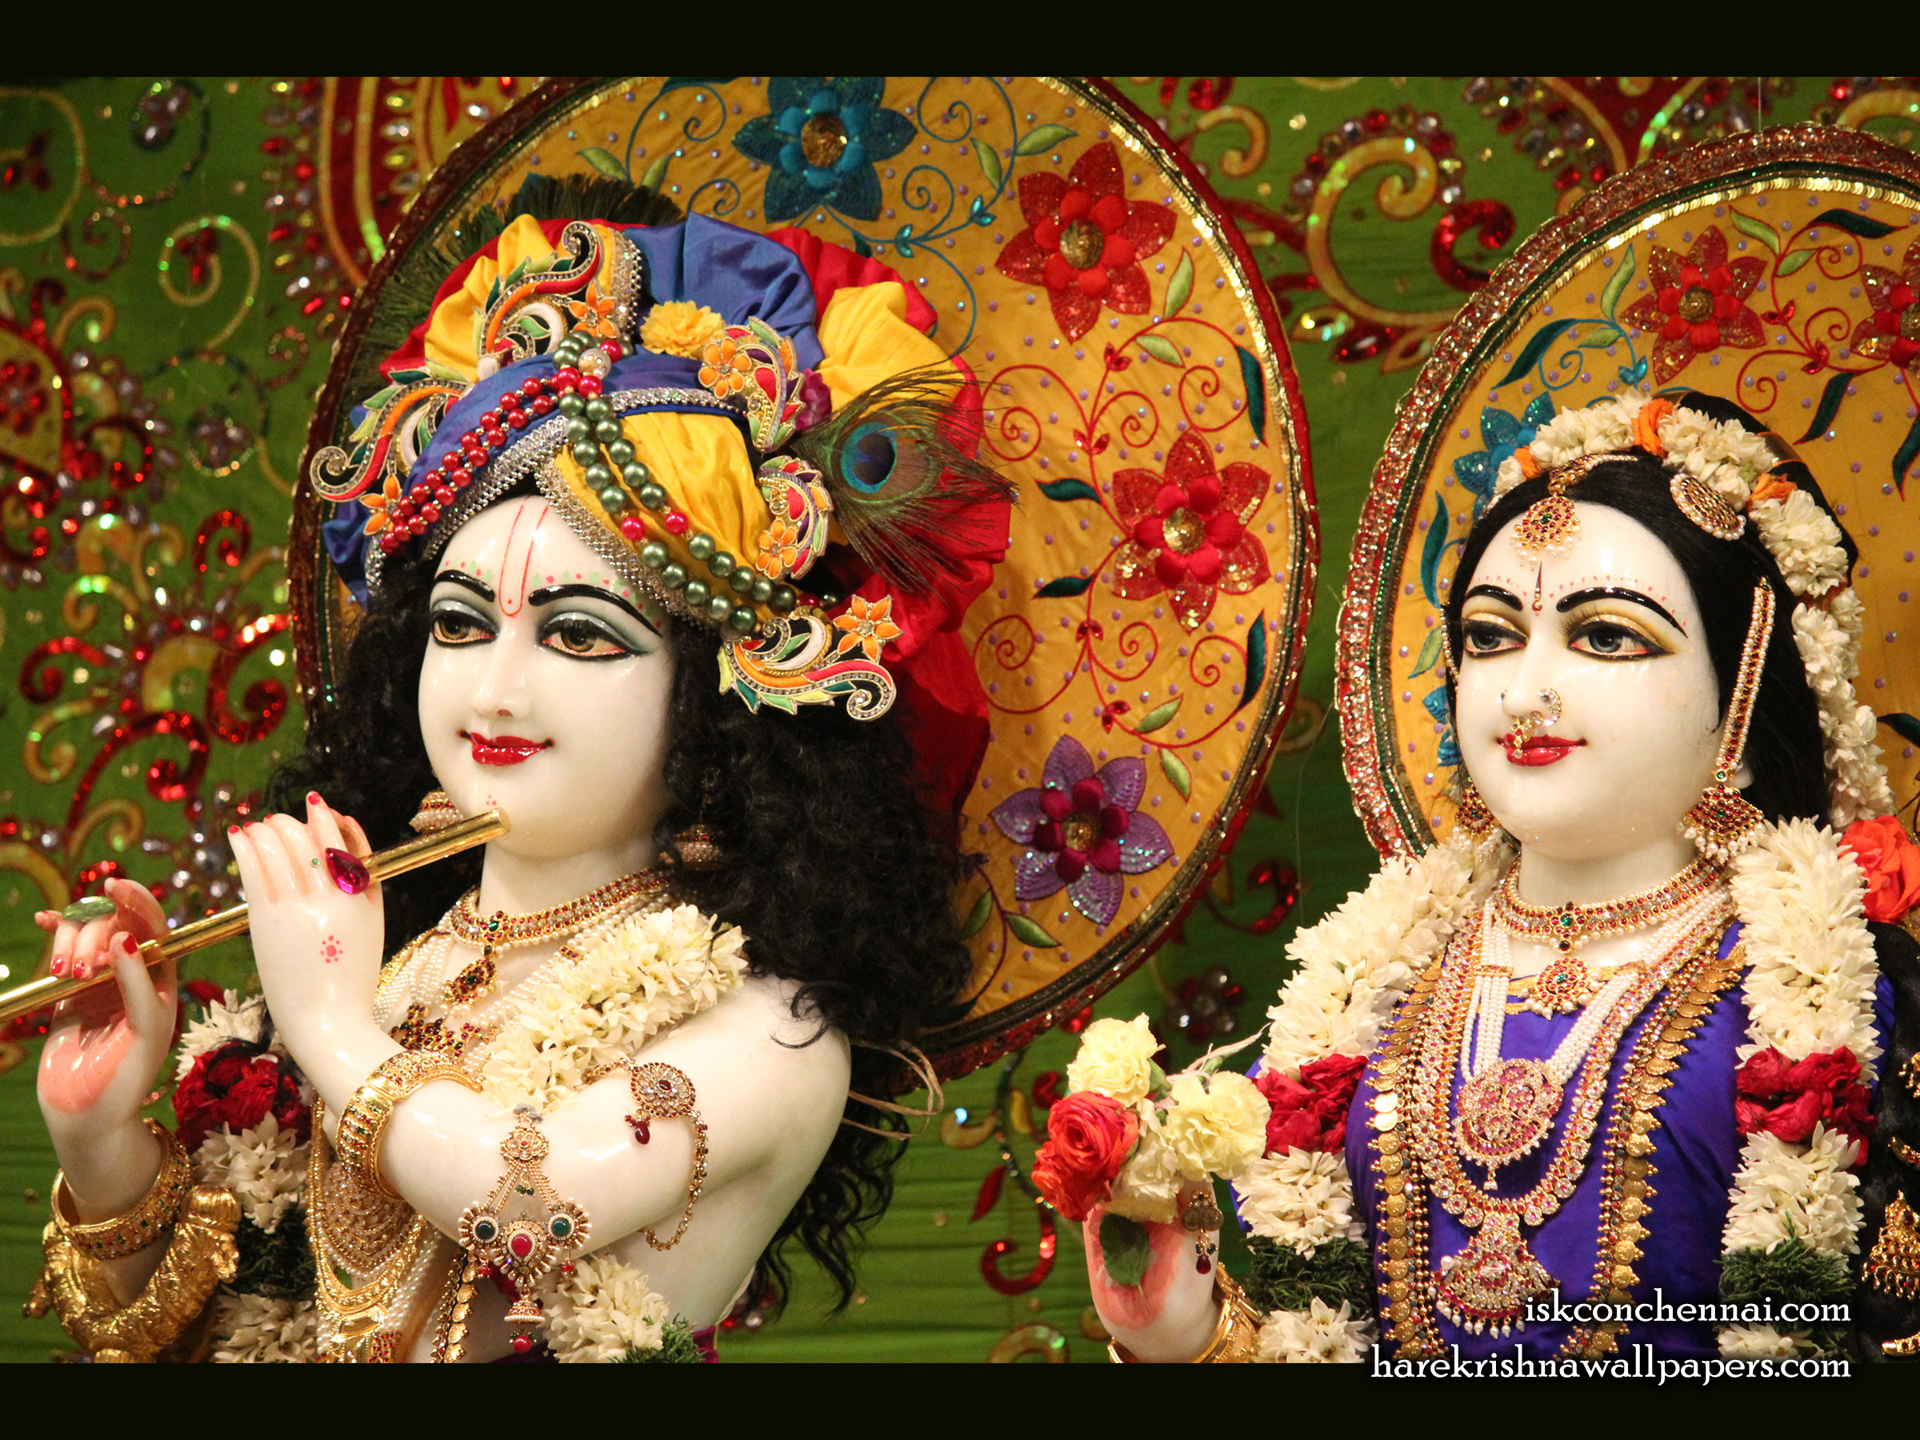 Sri Sri Radha Krishna Close up Wallpaper (011) Size 1920x1440 Download